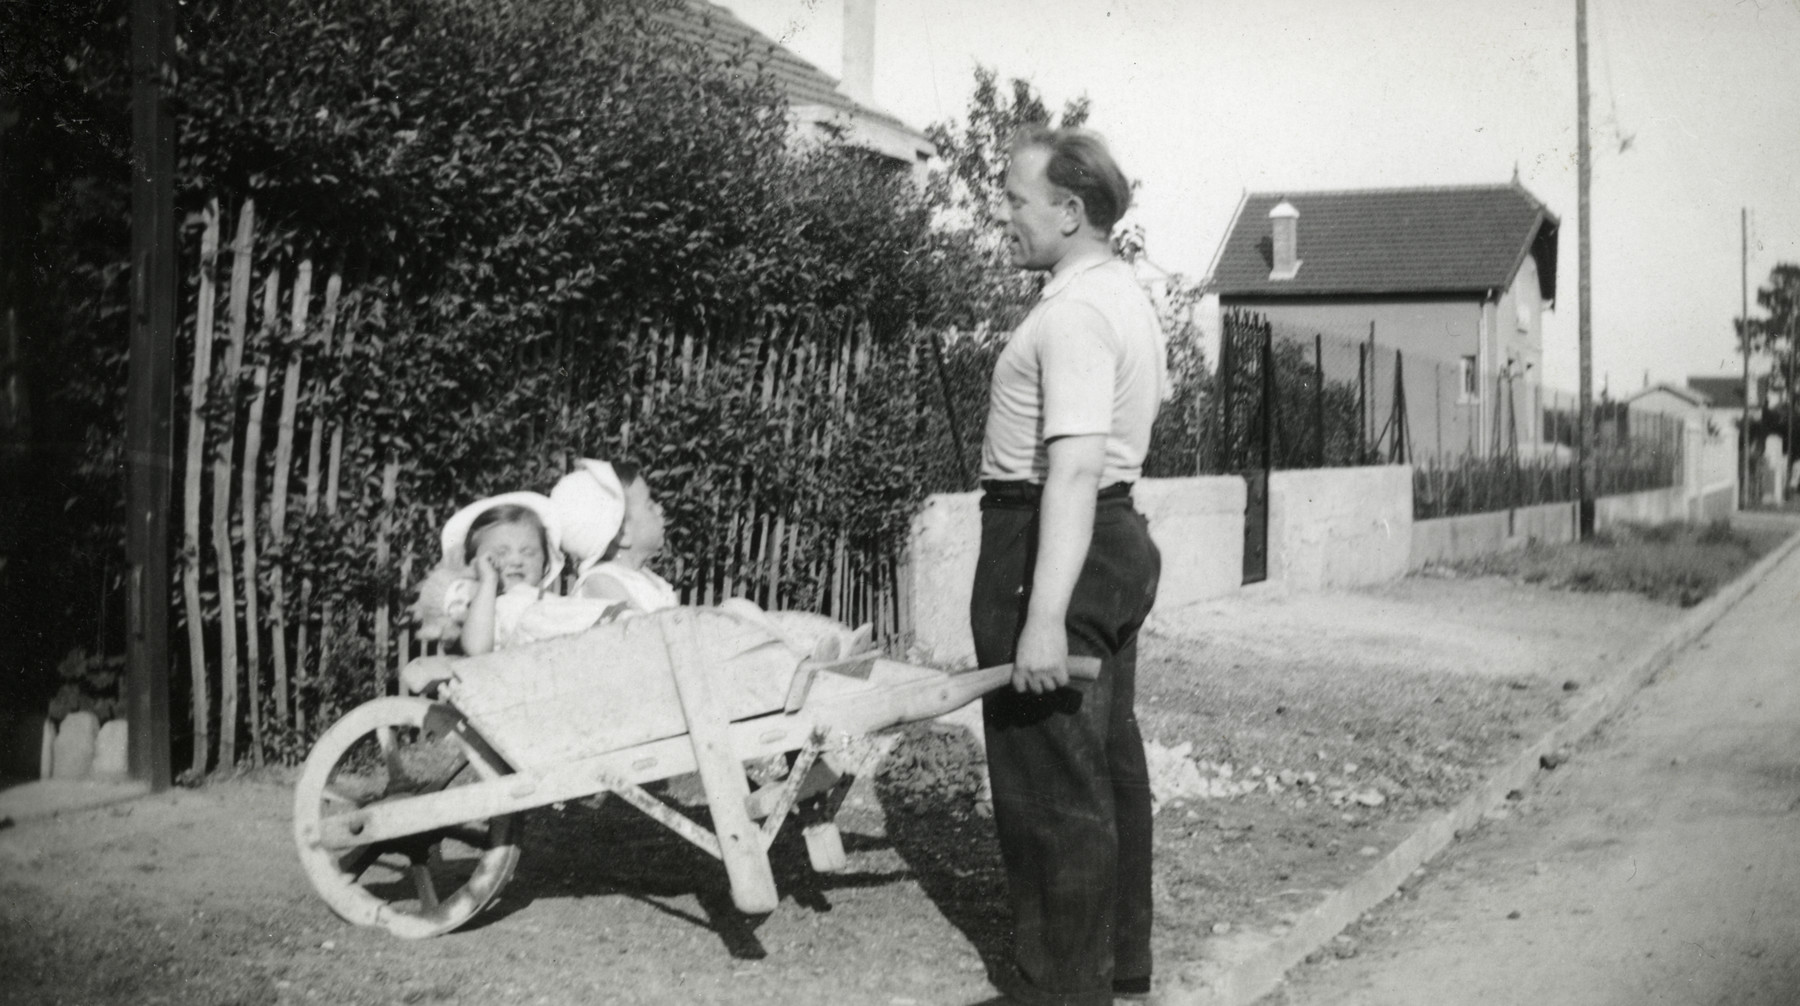 A Jewish father pushes his two young children in a wheelbarrow, near their home in Gagny, a suburb of Paris.  Pictured are Hersh Jakubovitch and his children Fernande and Albert.